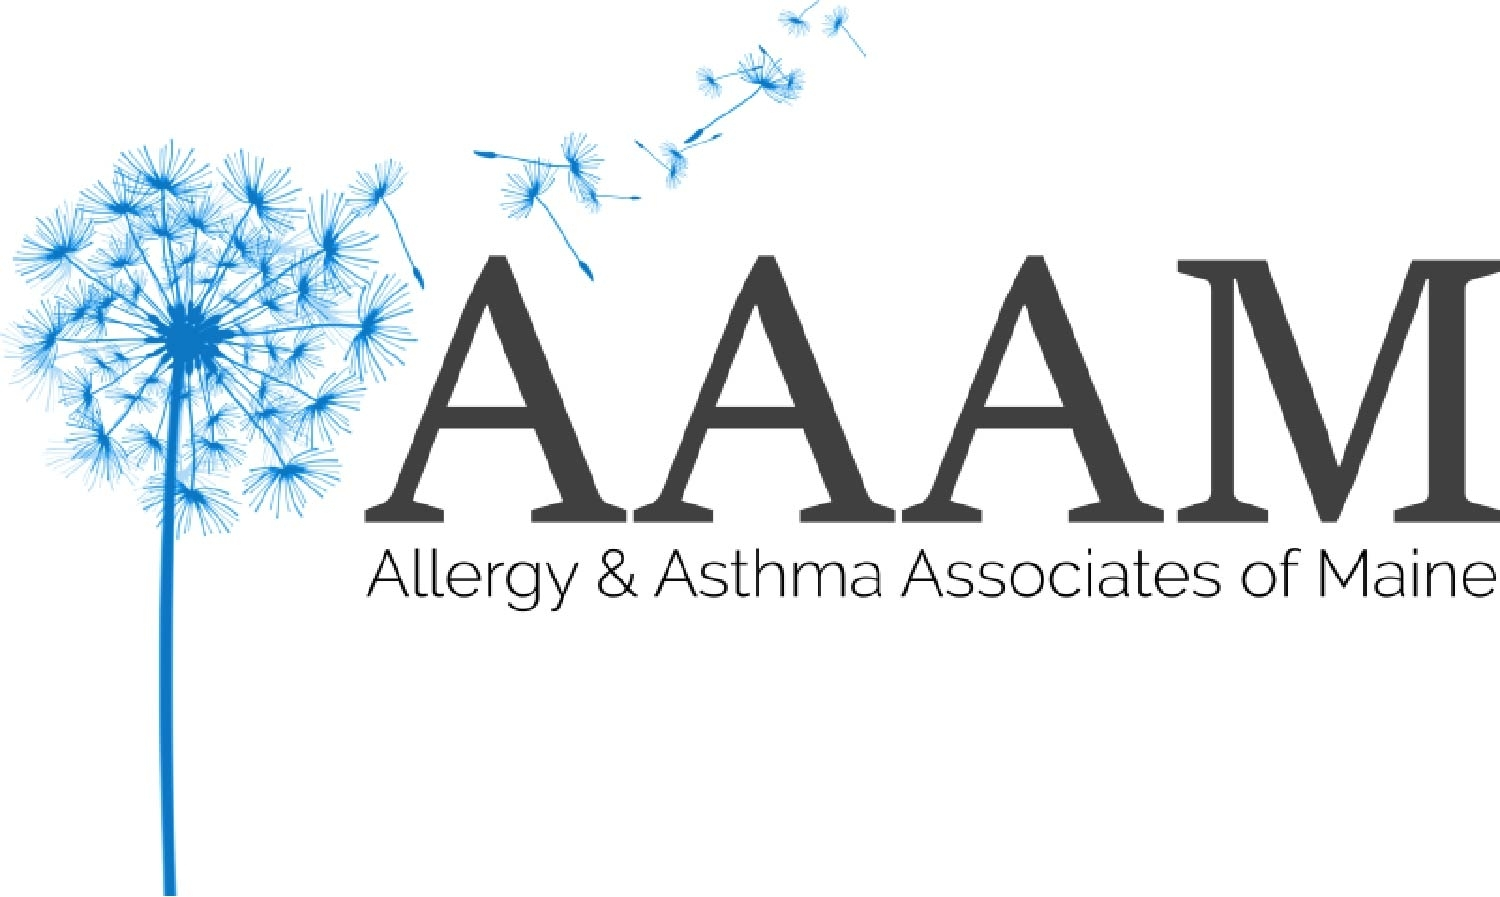 ALLERGY & ASTHMA ASSOCIATES OF MAINE, P.A.